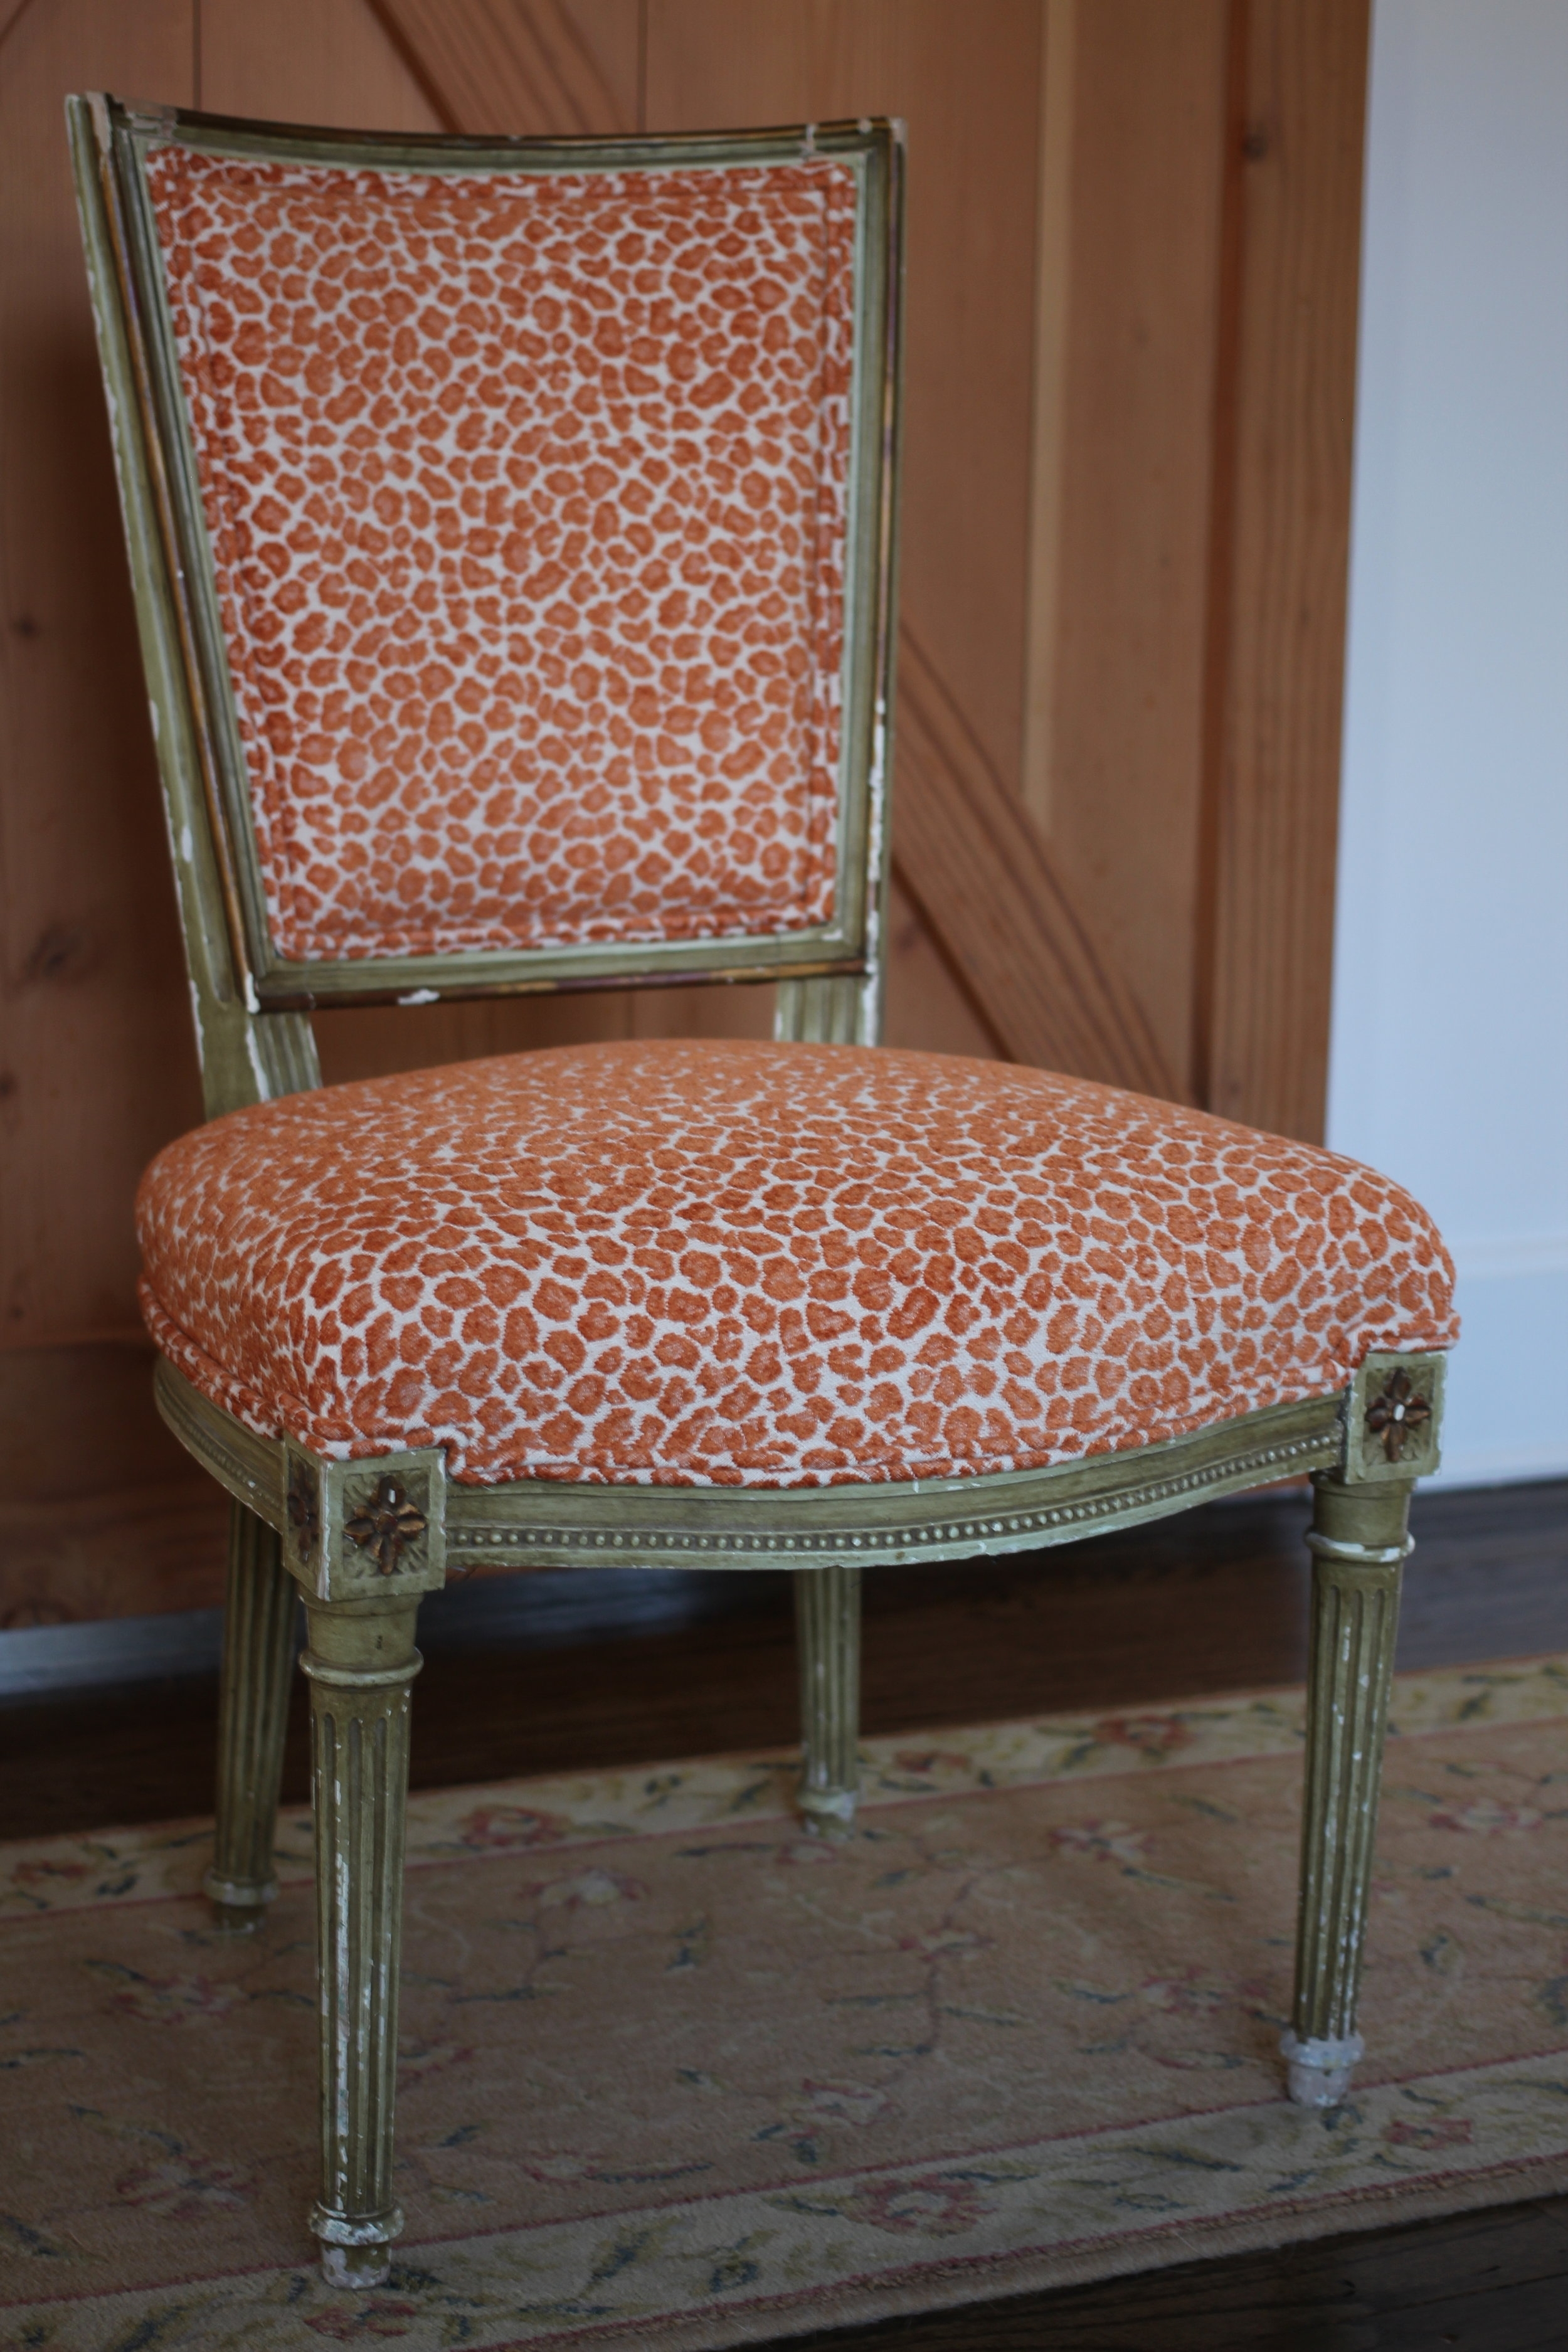 French chair covered in Stout's Beast, j'adore